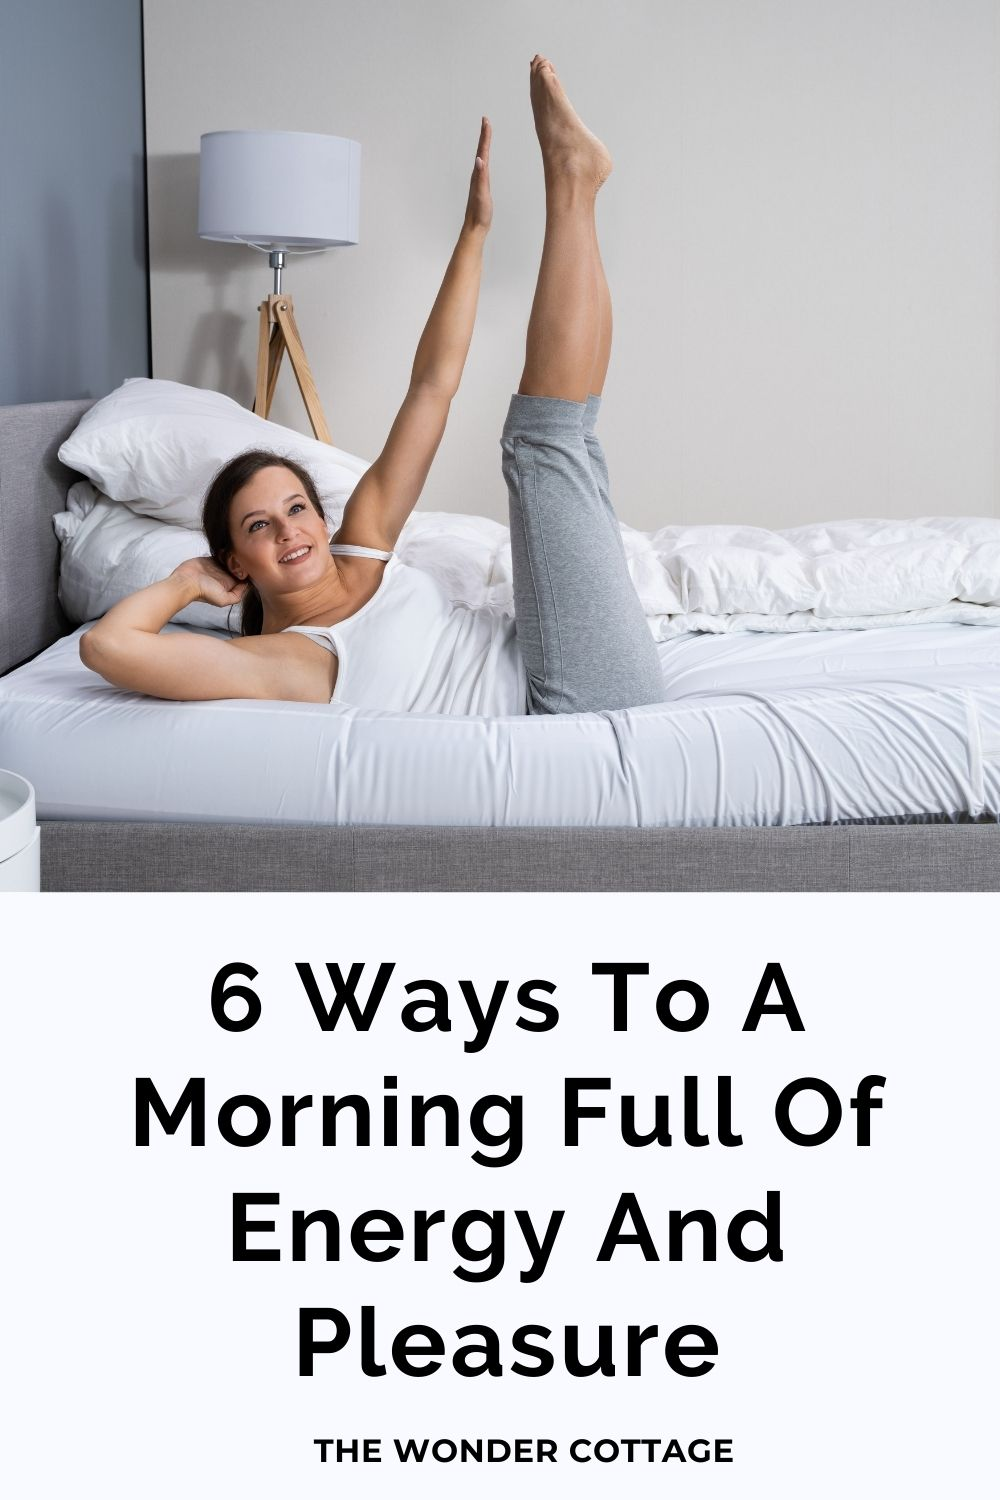 6 ways to a morning full of energy and pleasure